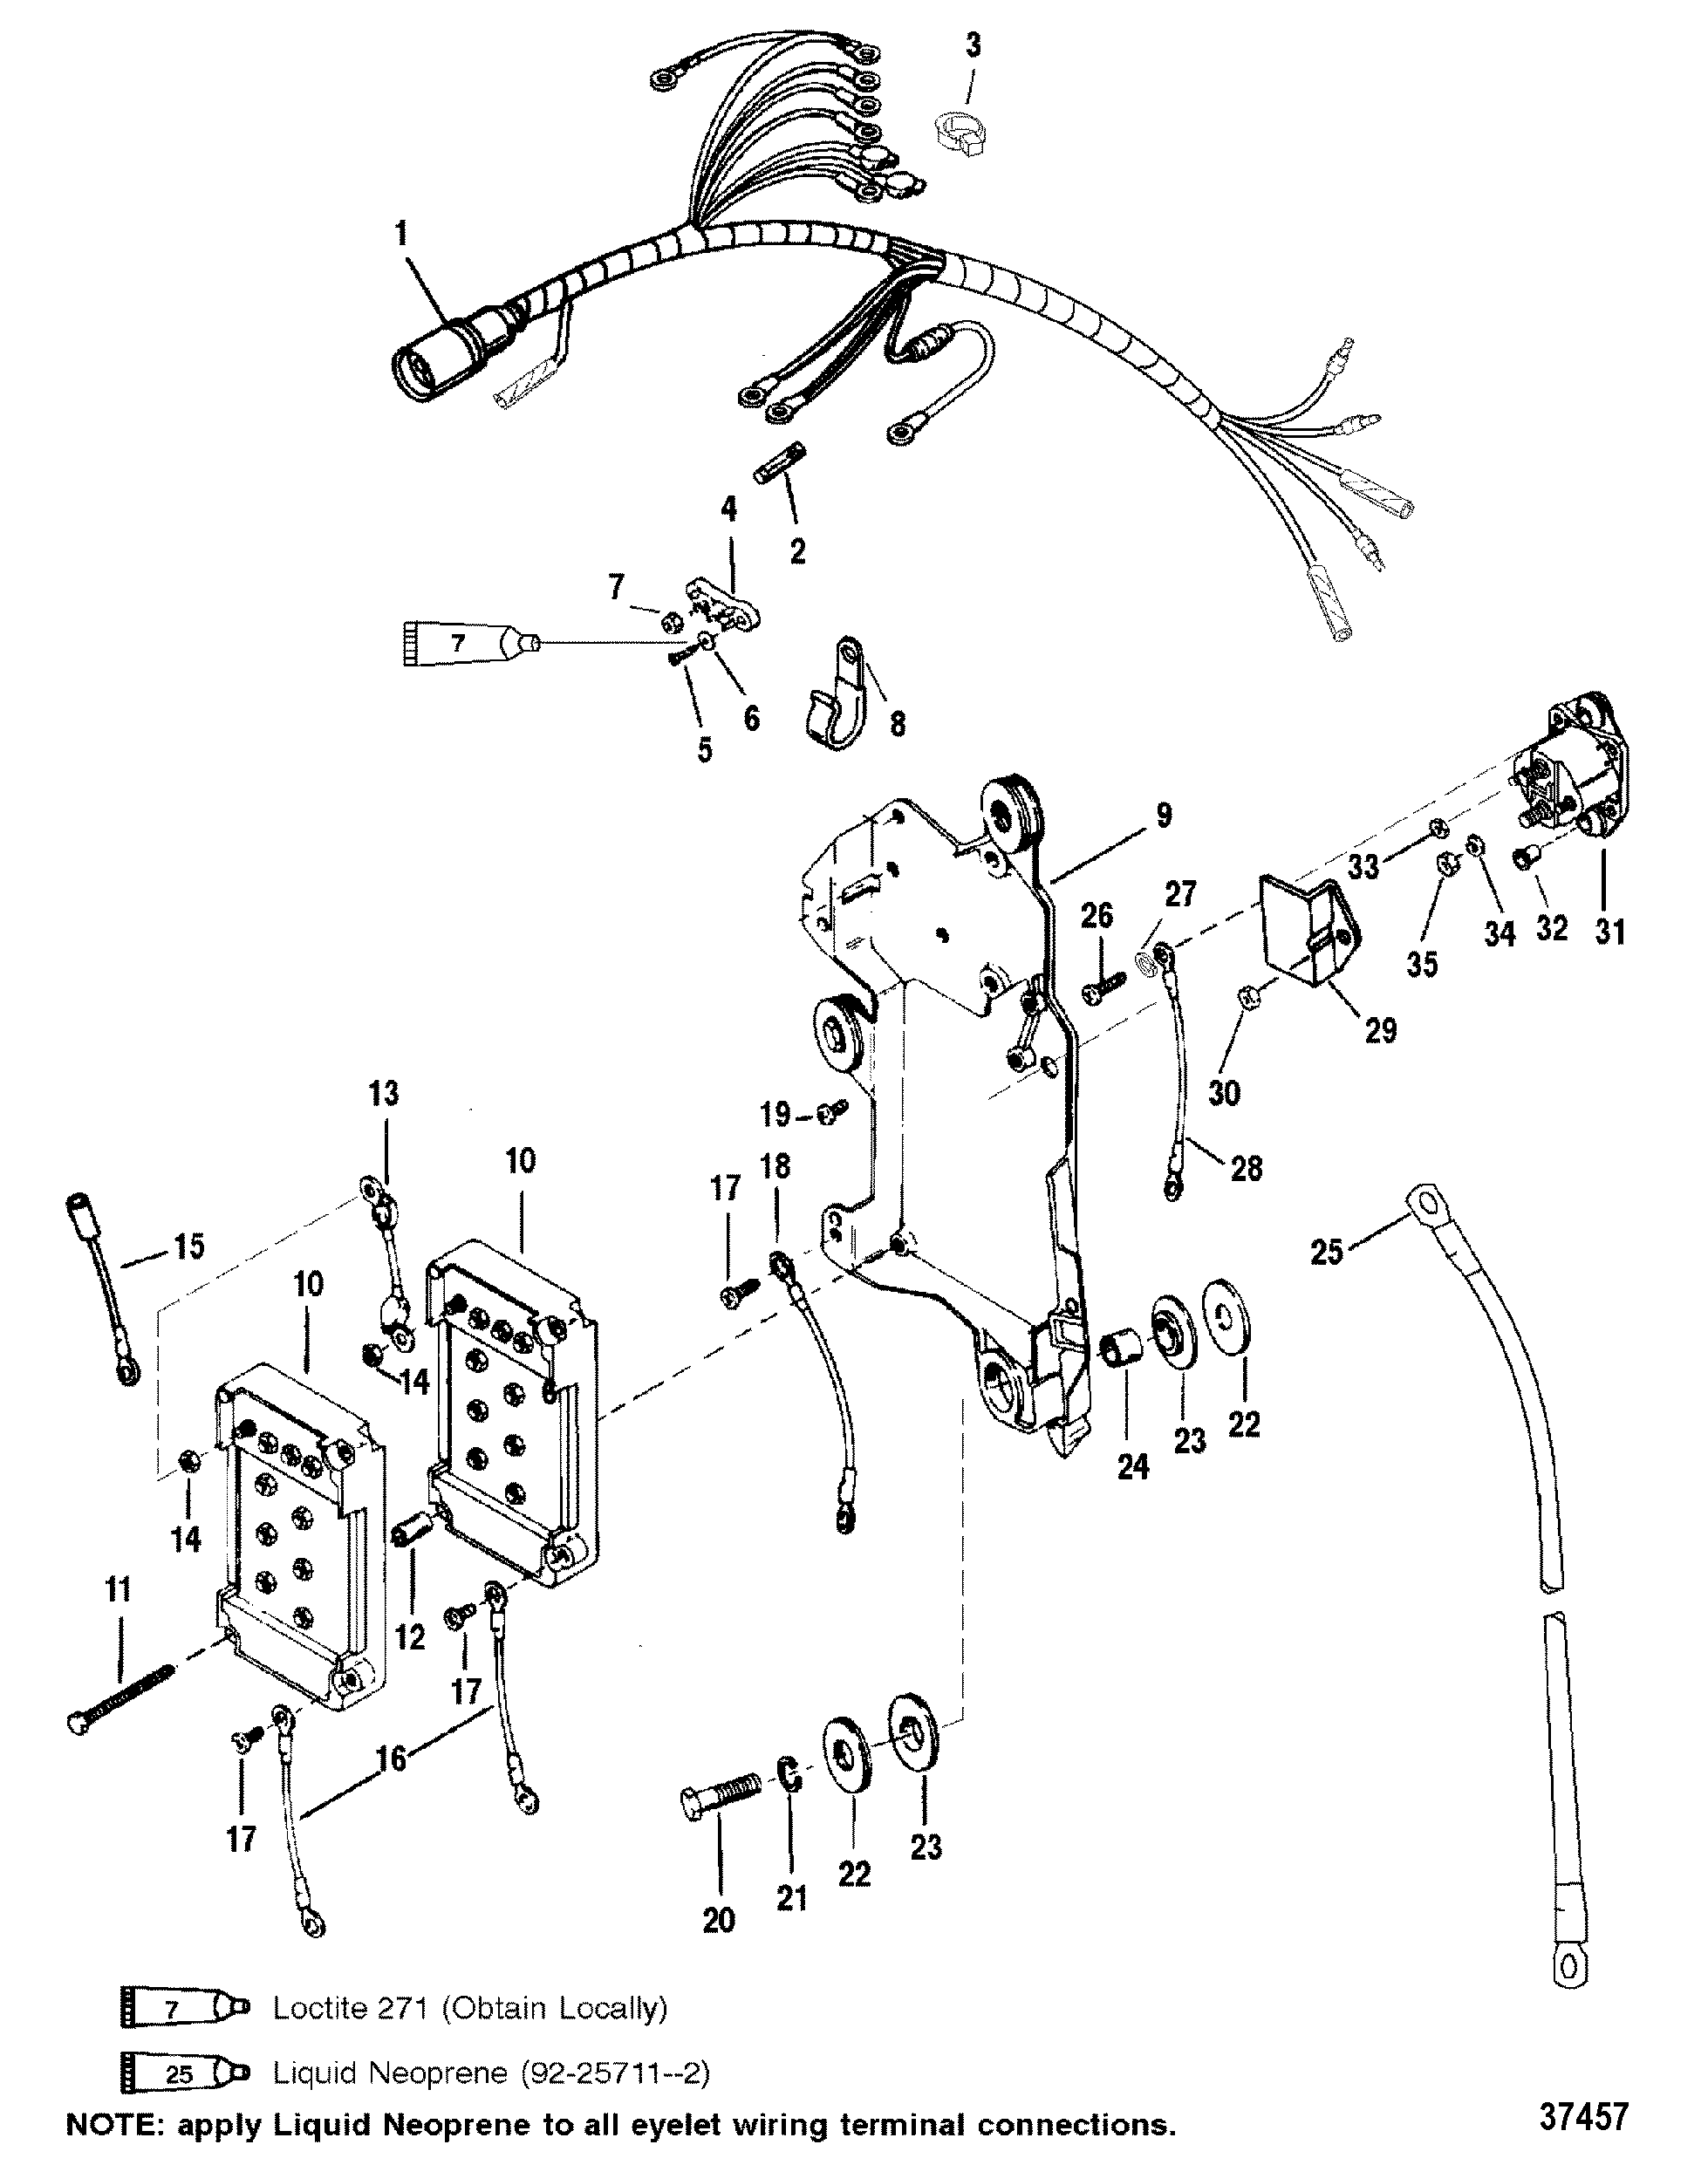 mercury outboard wiring harness mercury image mercury outboard wiring harness wiring diagram and hernes on mercury outboard wiring harness